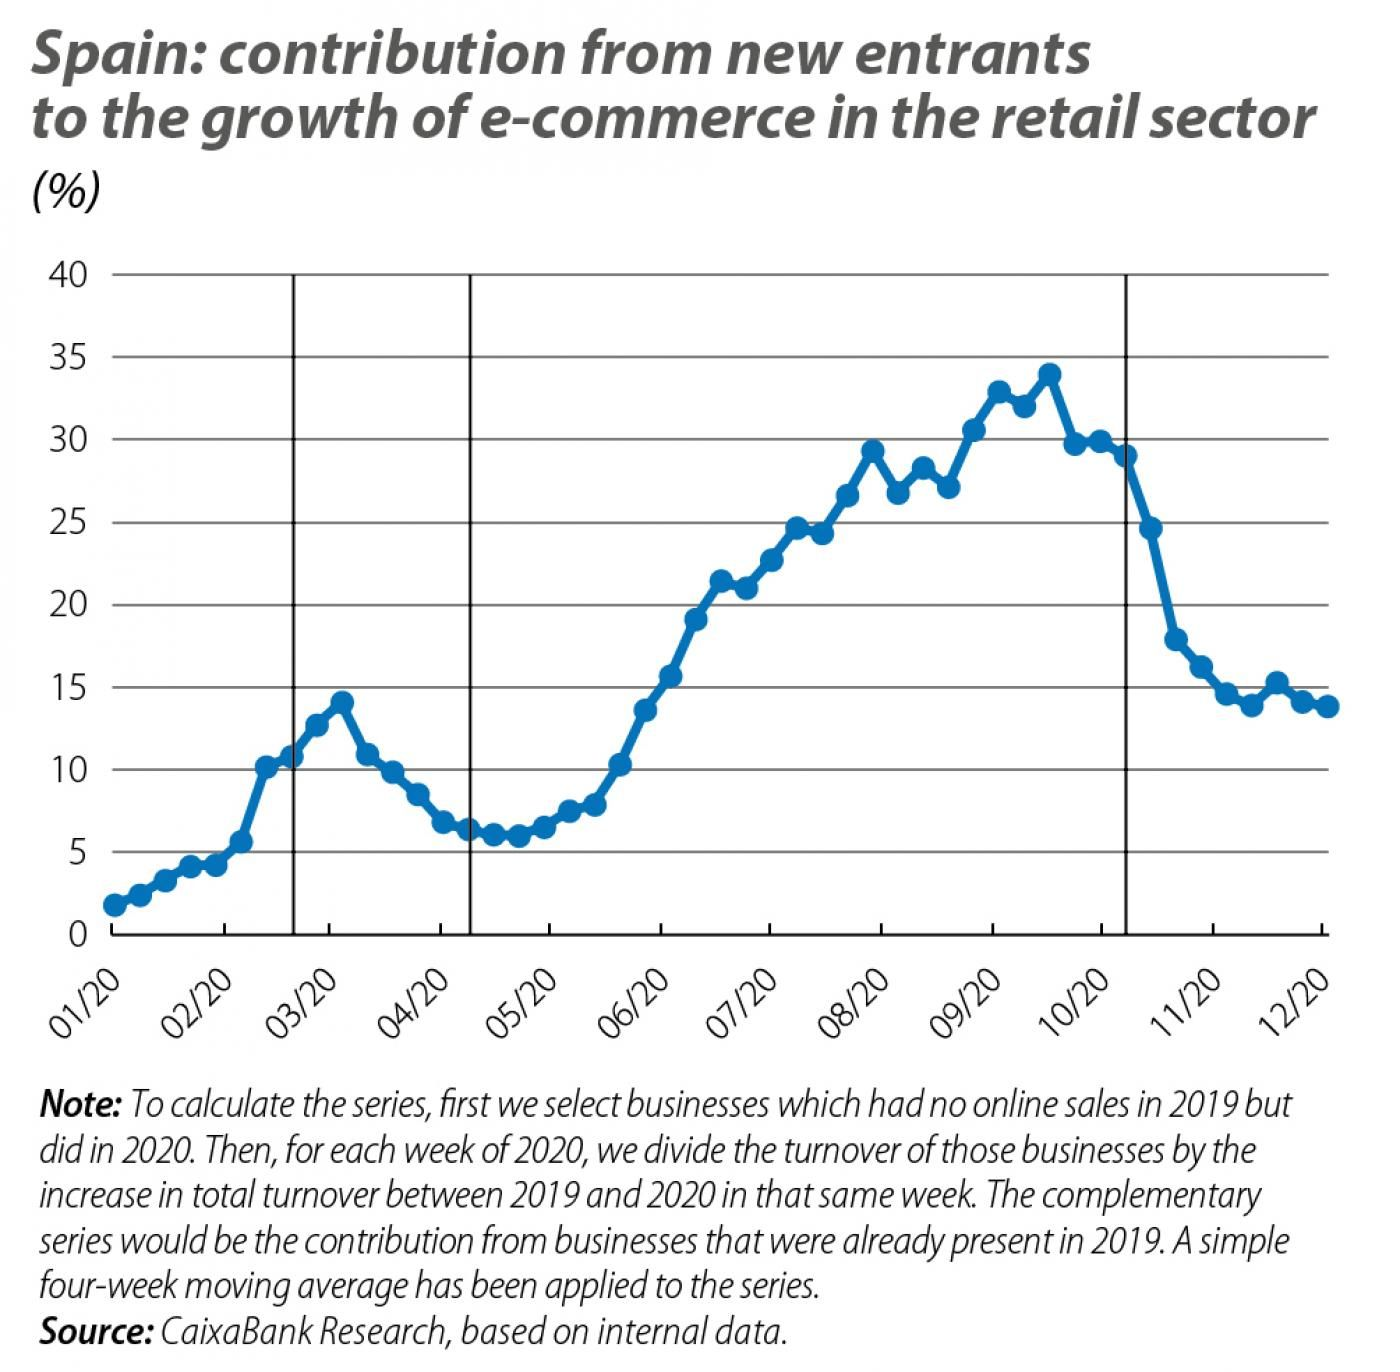 Spain: contribution from new entrants